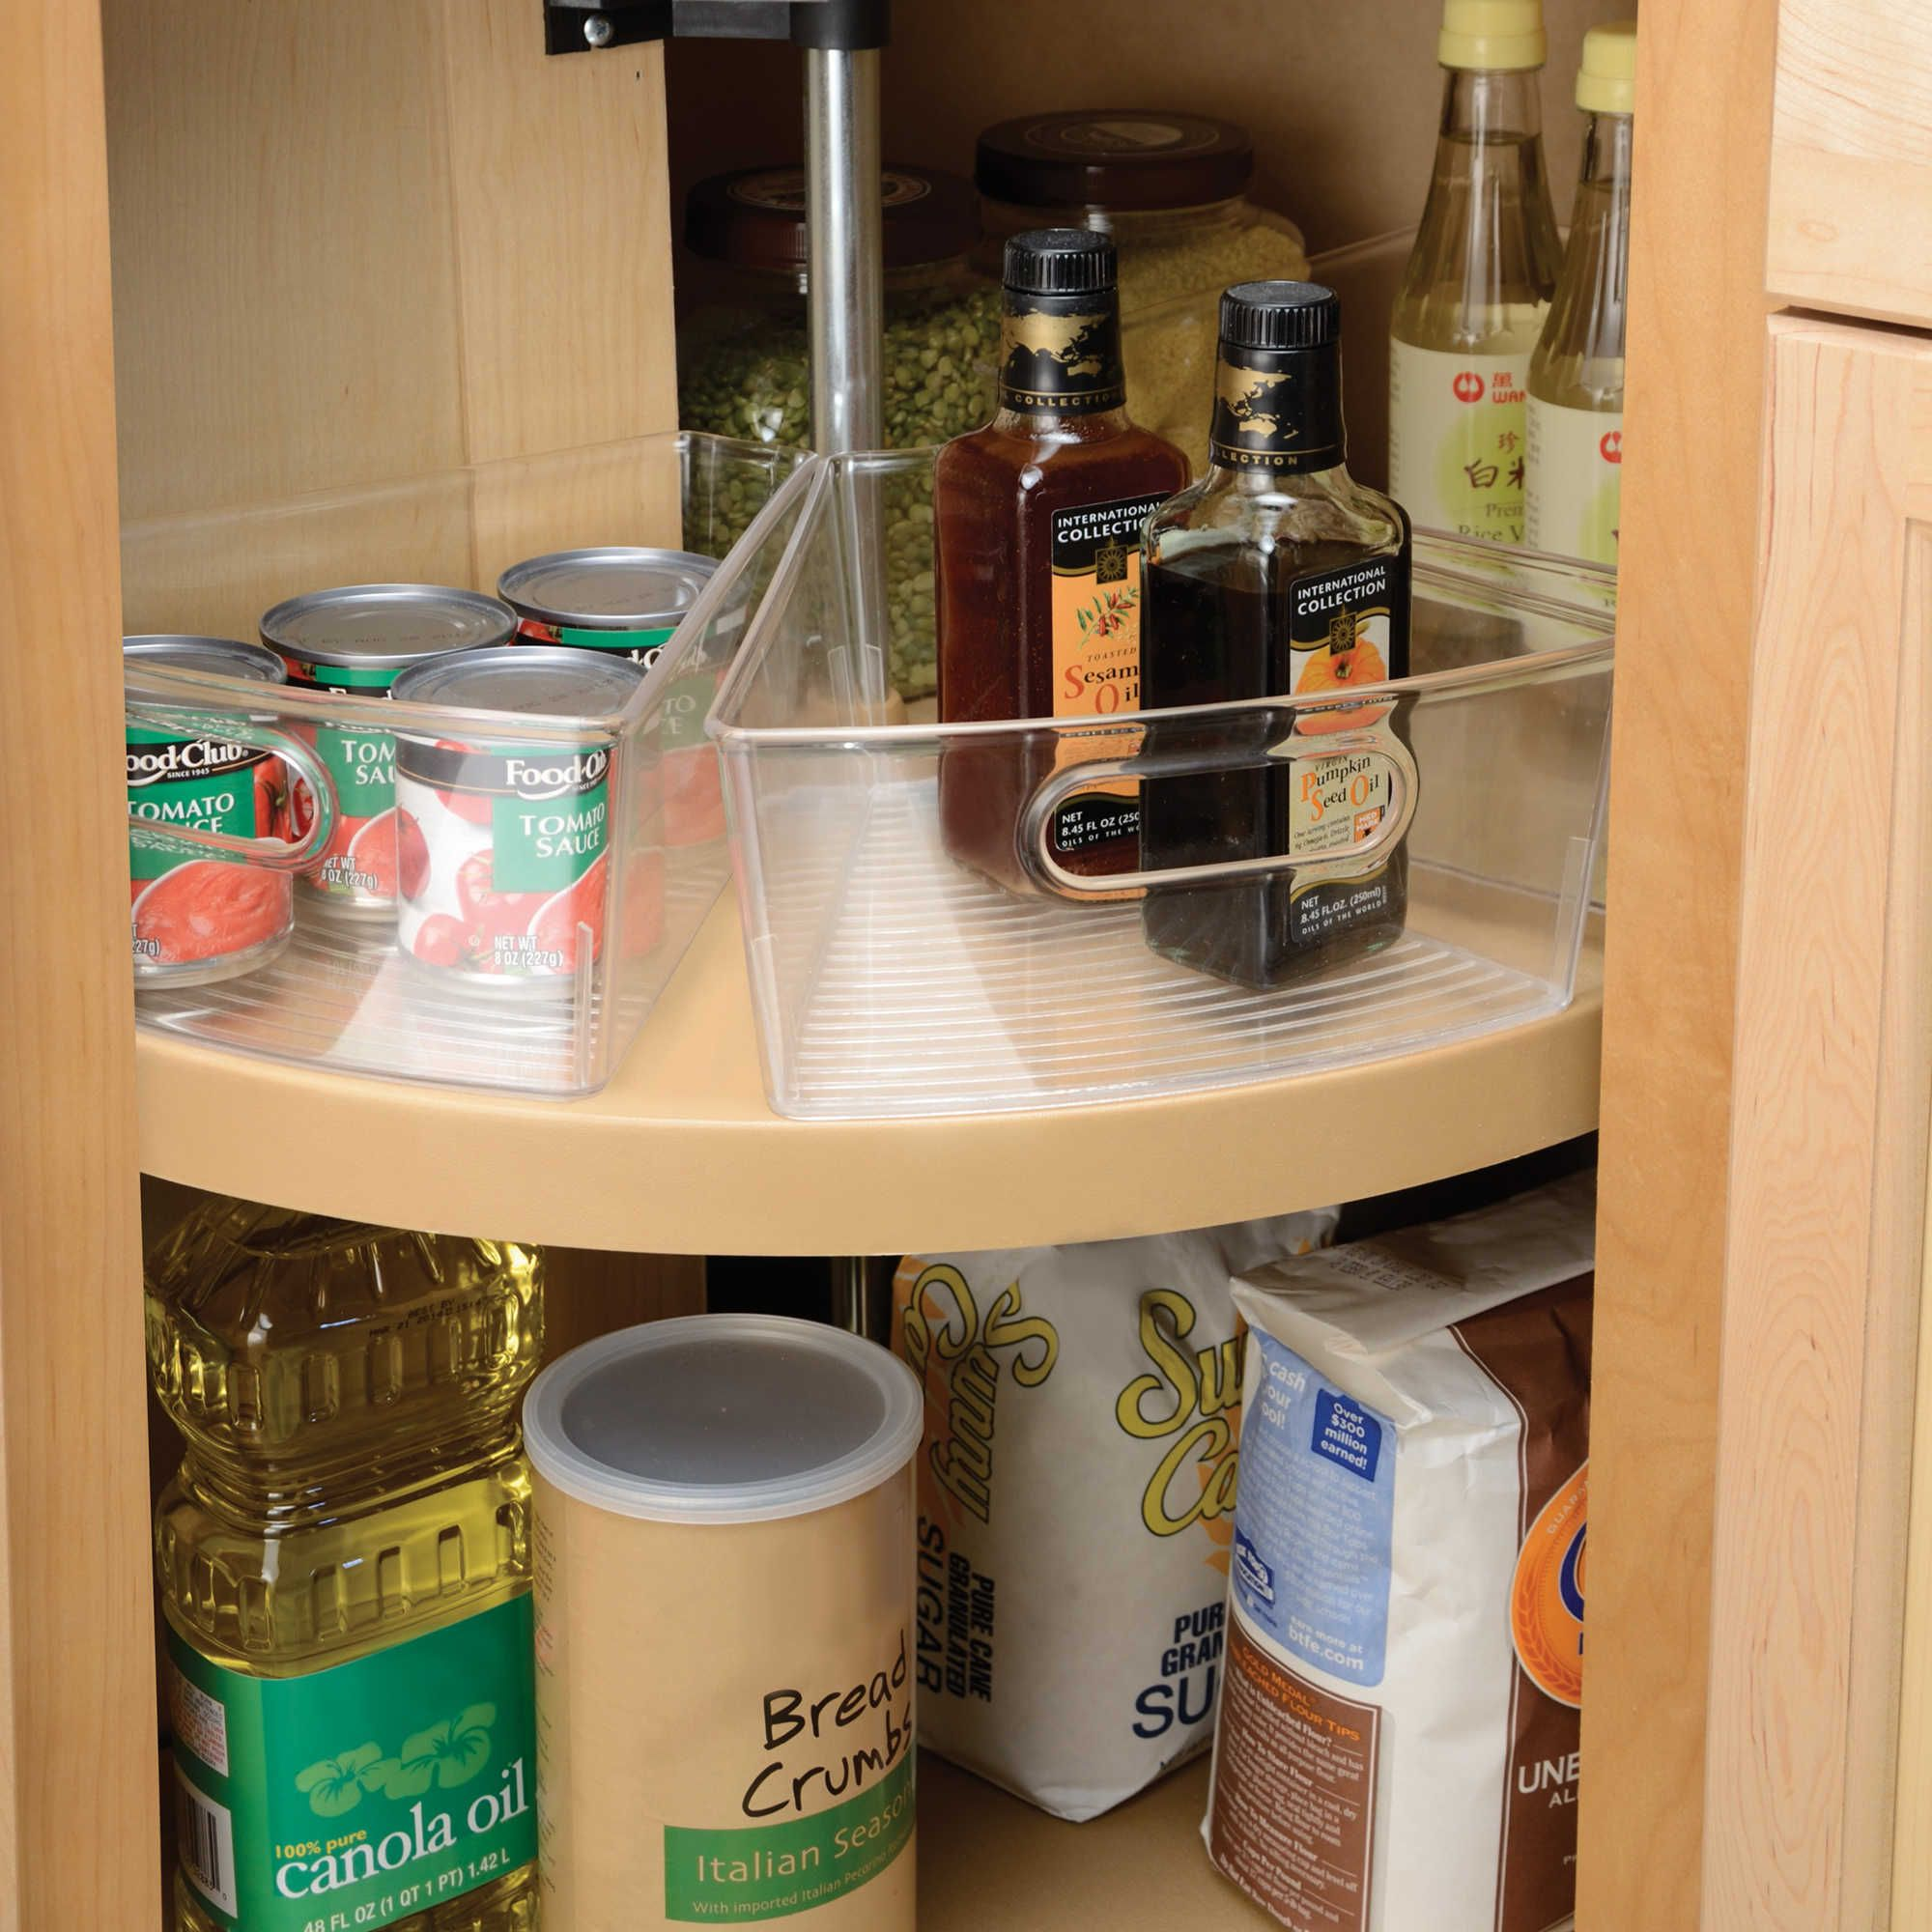 The Durable Clear Plastic Cabinet Binz Lazy Susan Storage